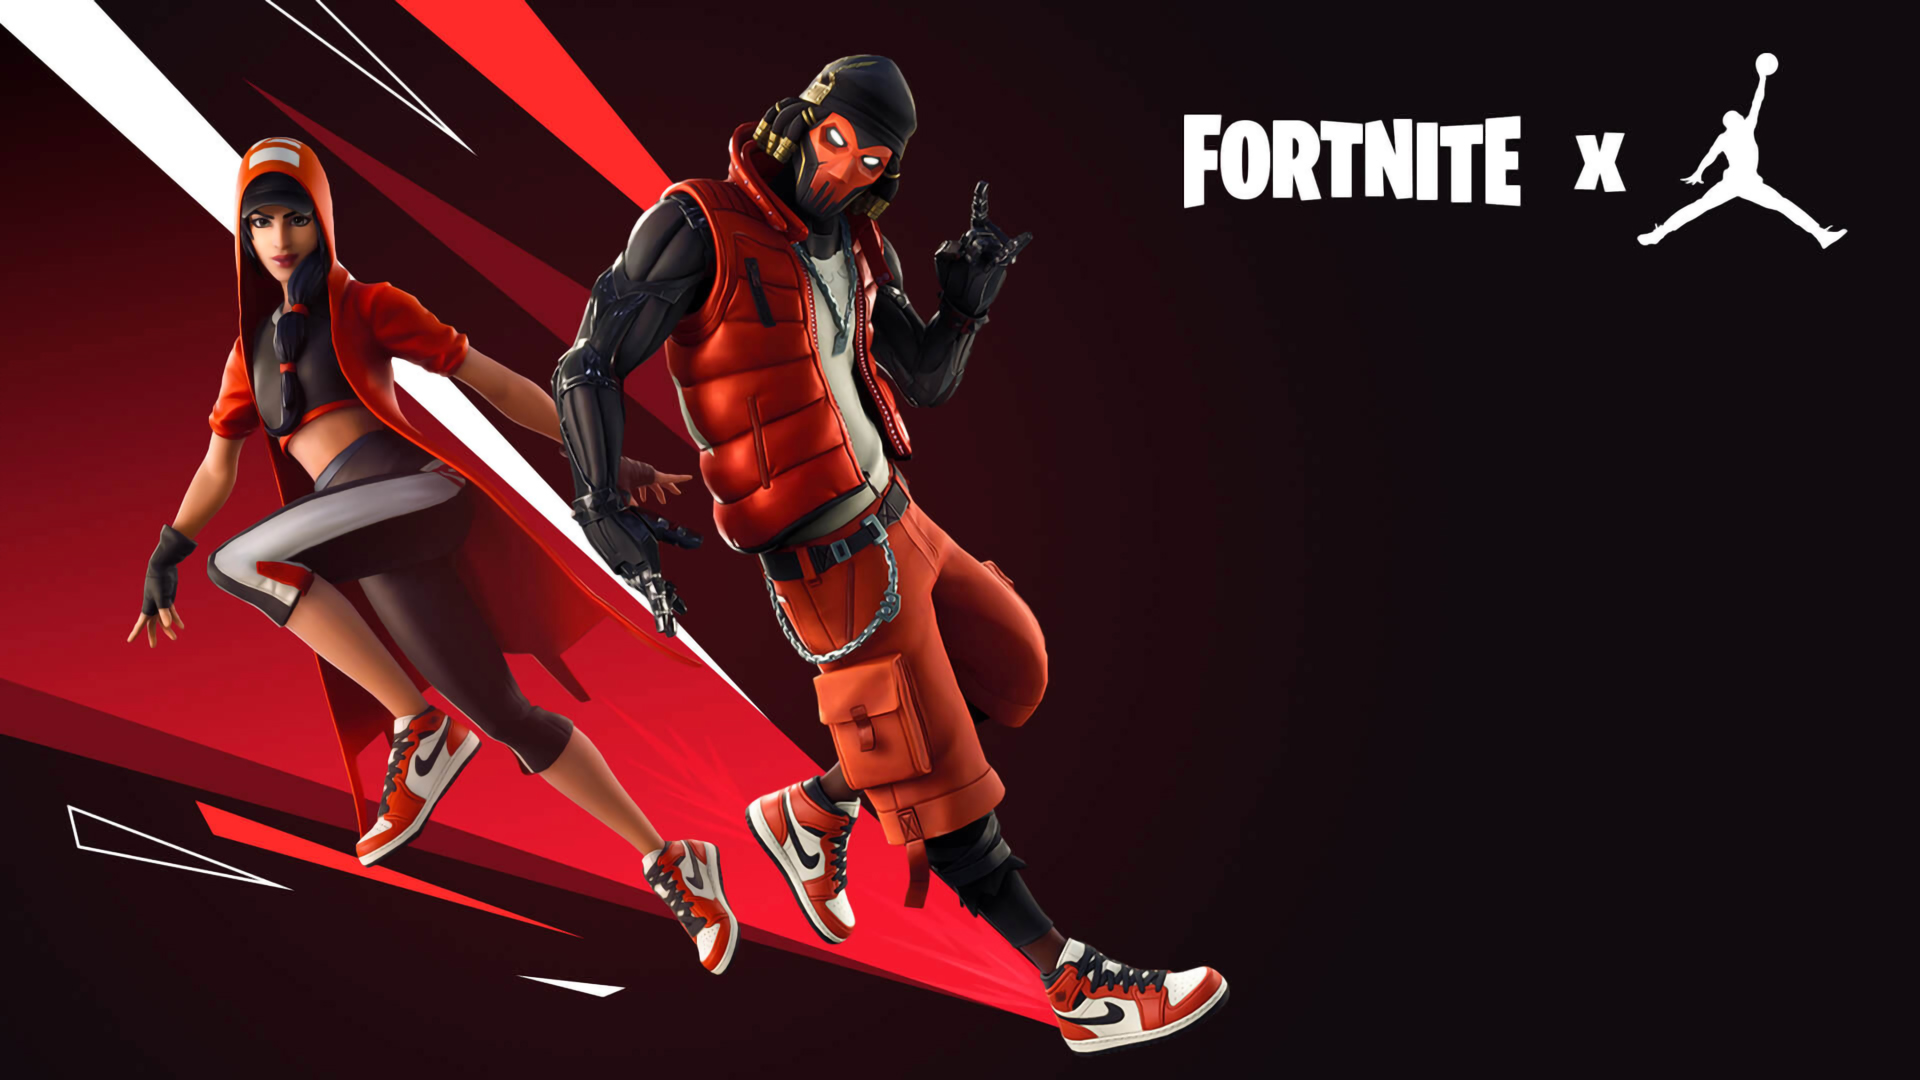 Fortnite Background Hd 4k 1080p Wallpapers download   The 1920x1080